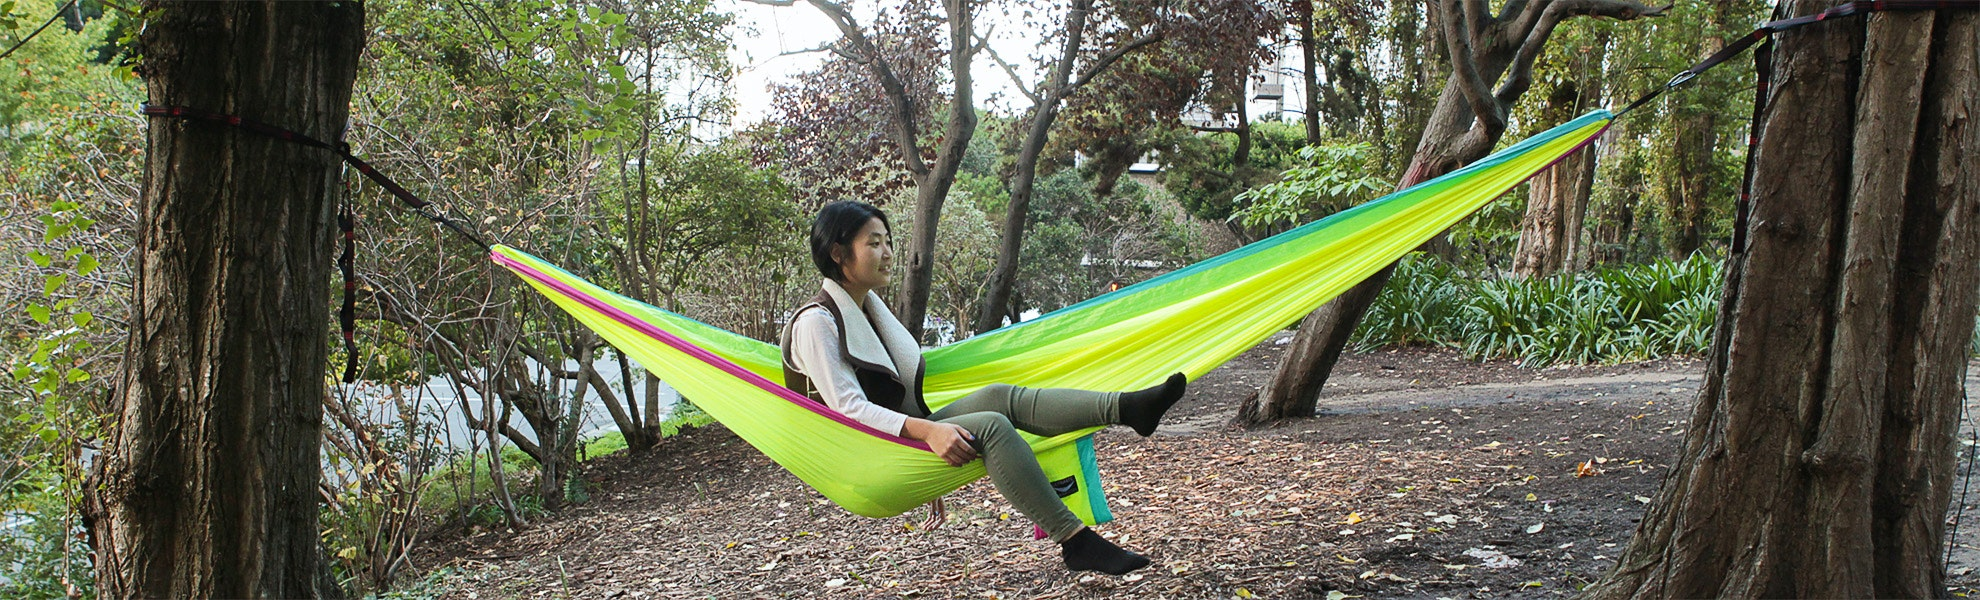 the ultimate hammock double the ultimate hammock double   price  u0026 reviews   massdrop  rh   massdrop